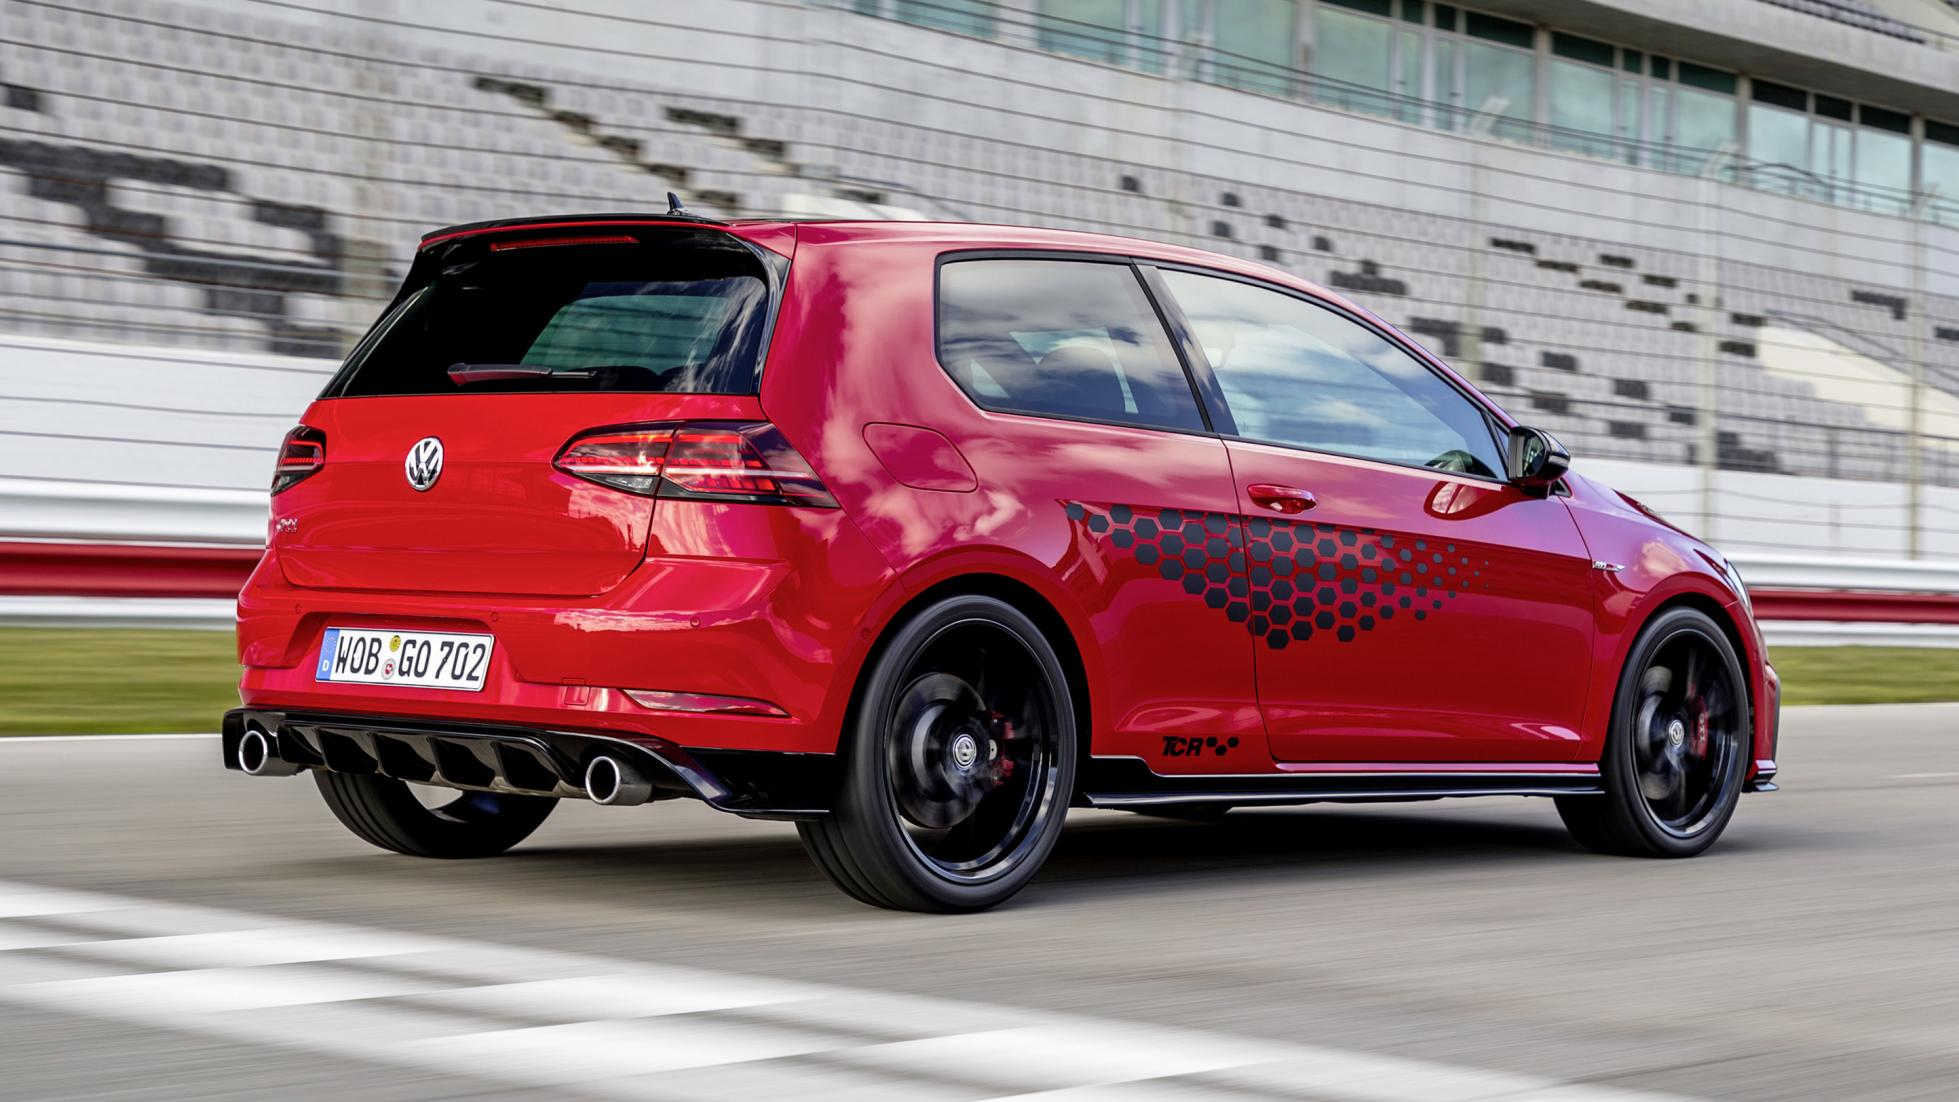 Topgear Vw Golf Gti Tcr Review Harder Edged Hot Hatch Driven